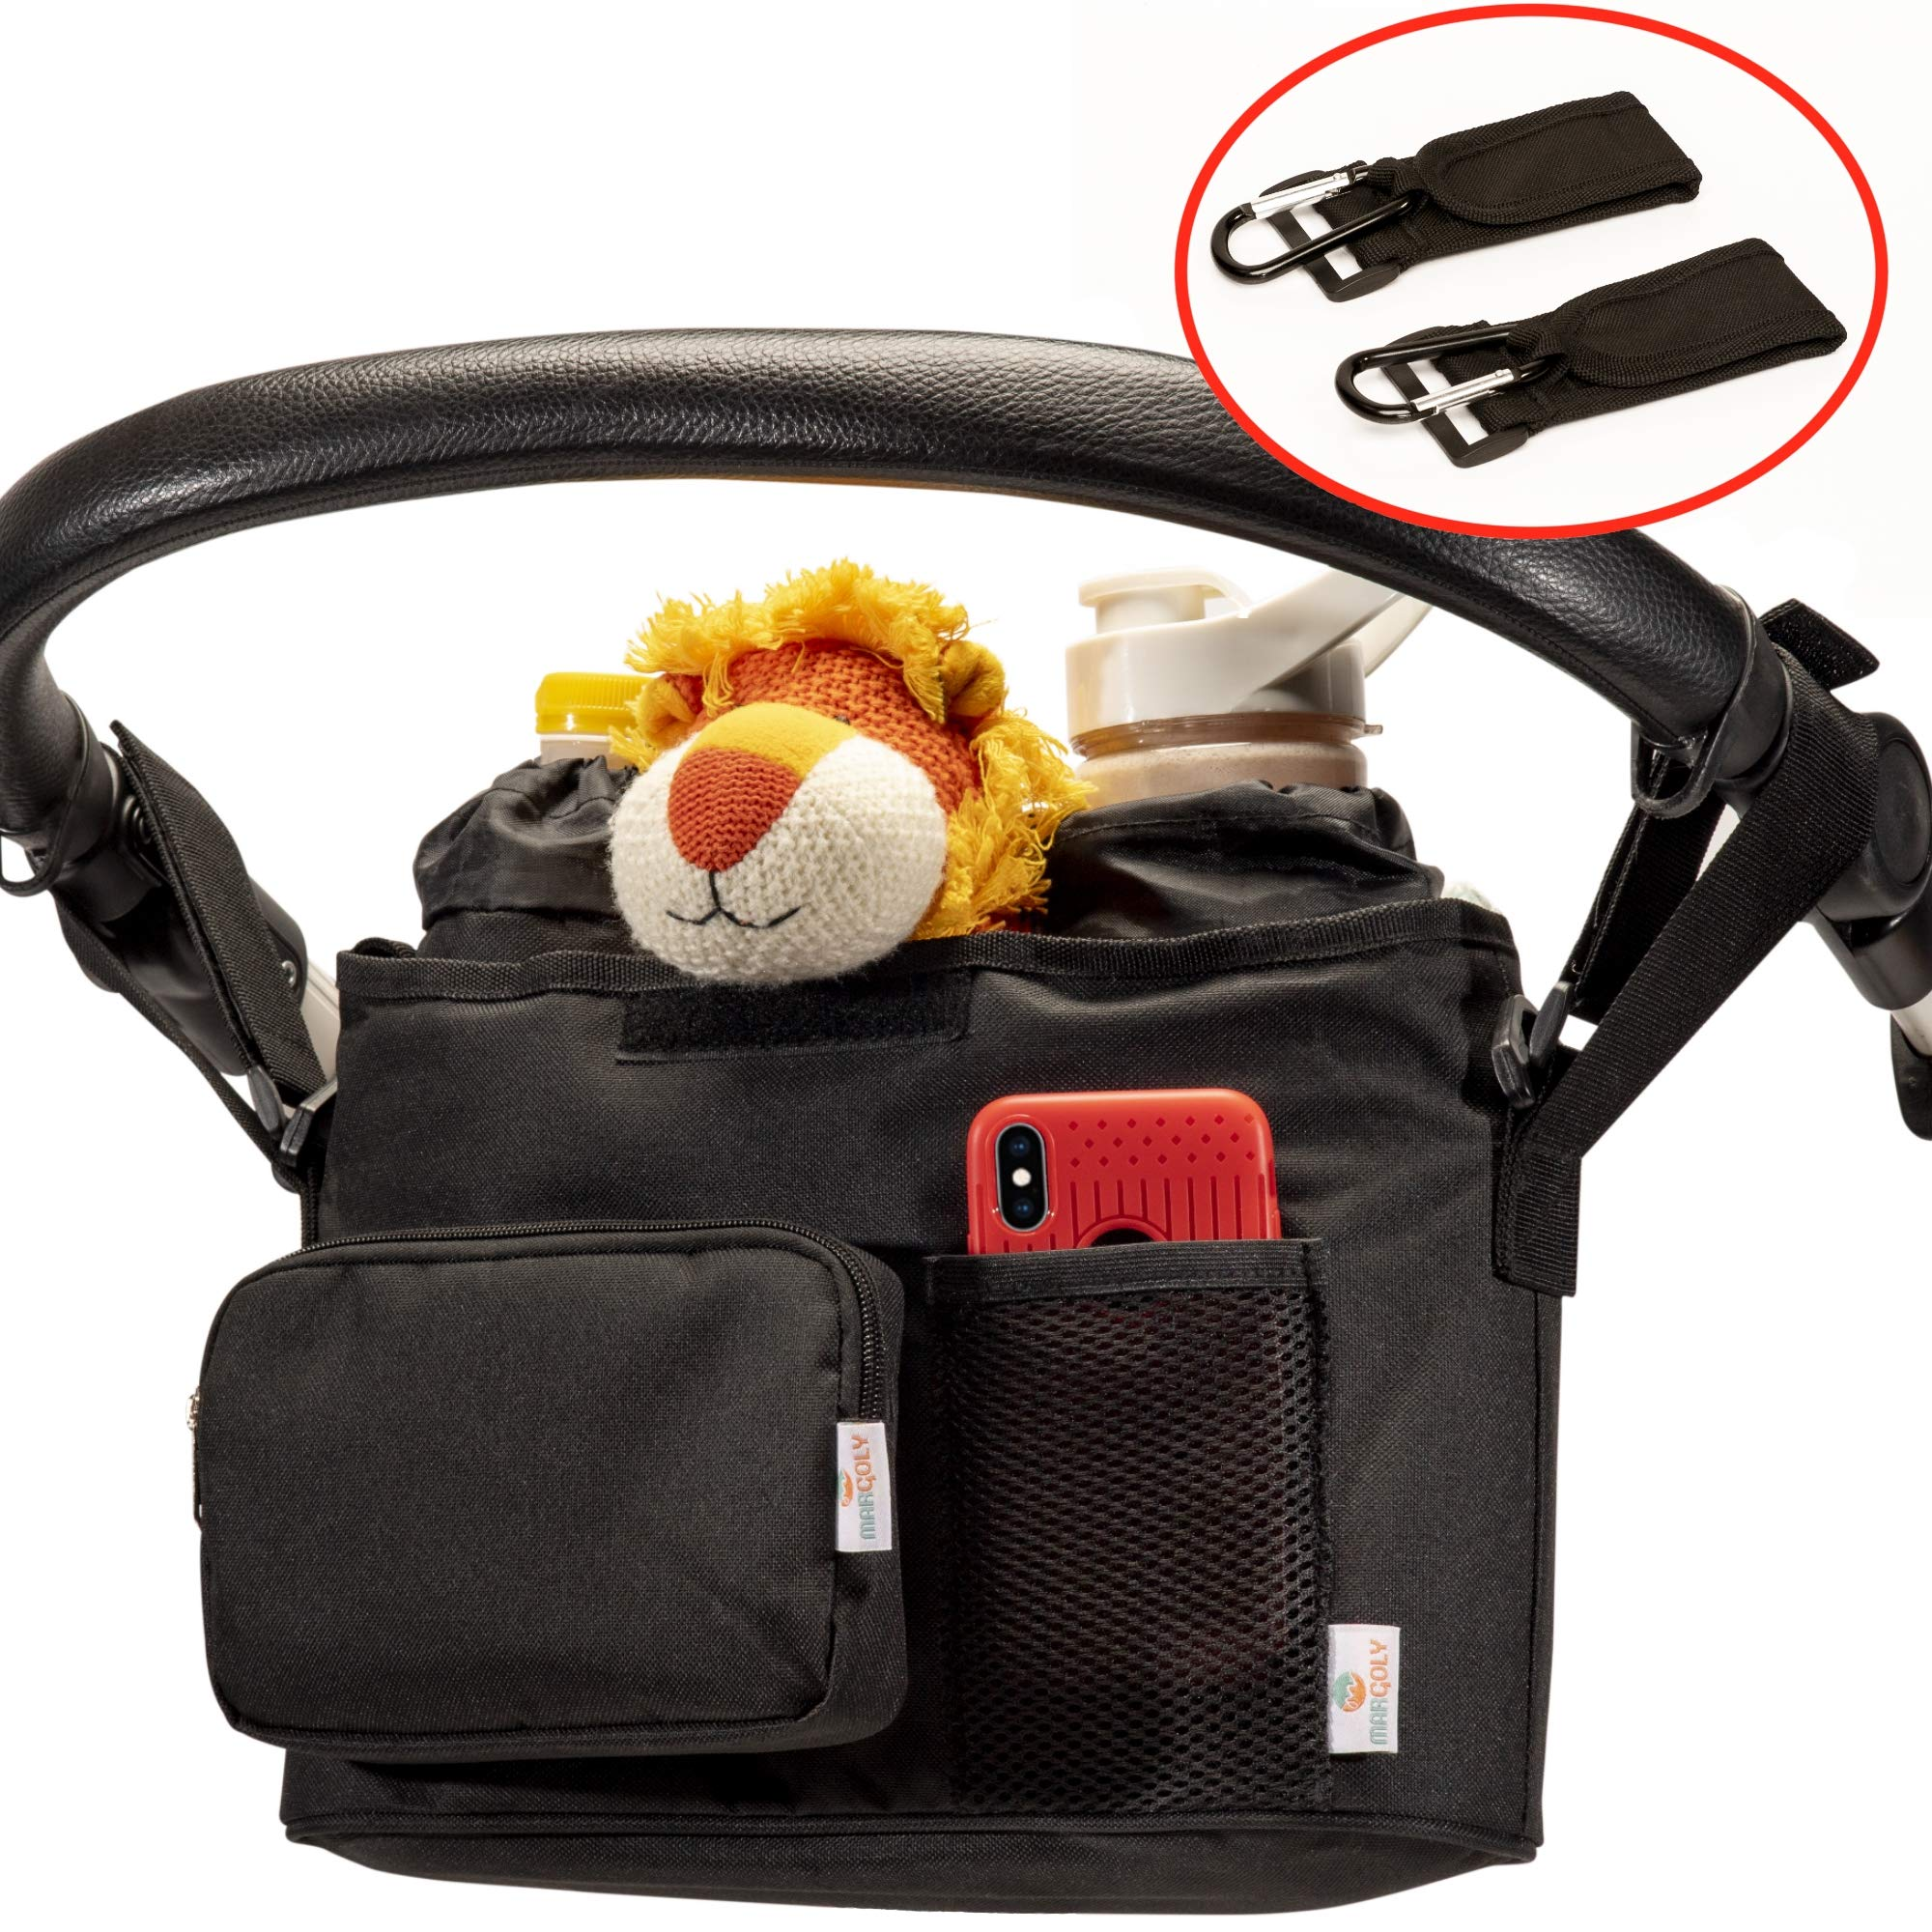 Stroller Organizer Universal Fit. Perfect Baby Bag Bundle for Parents On The Go with Shoulder Strap, Detachable Pouch, Insulated Bottle Sleeves and Stroller Hooks